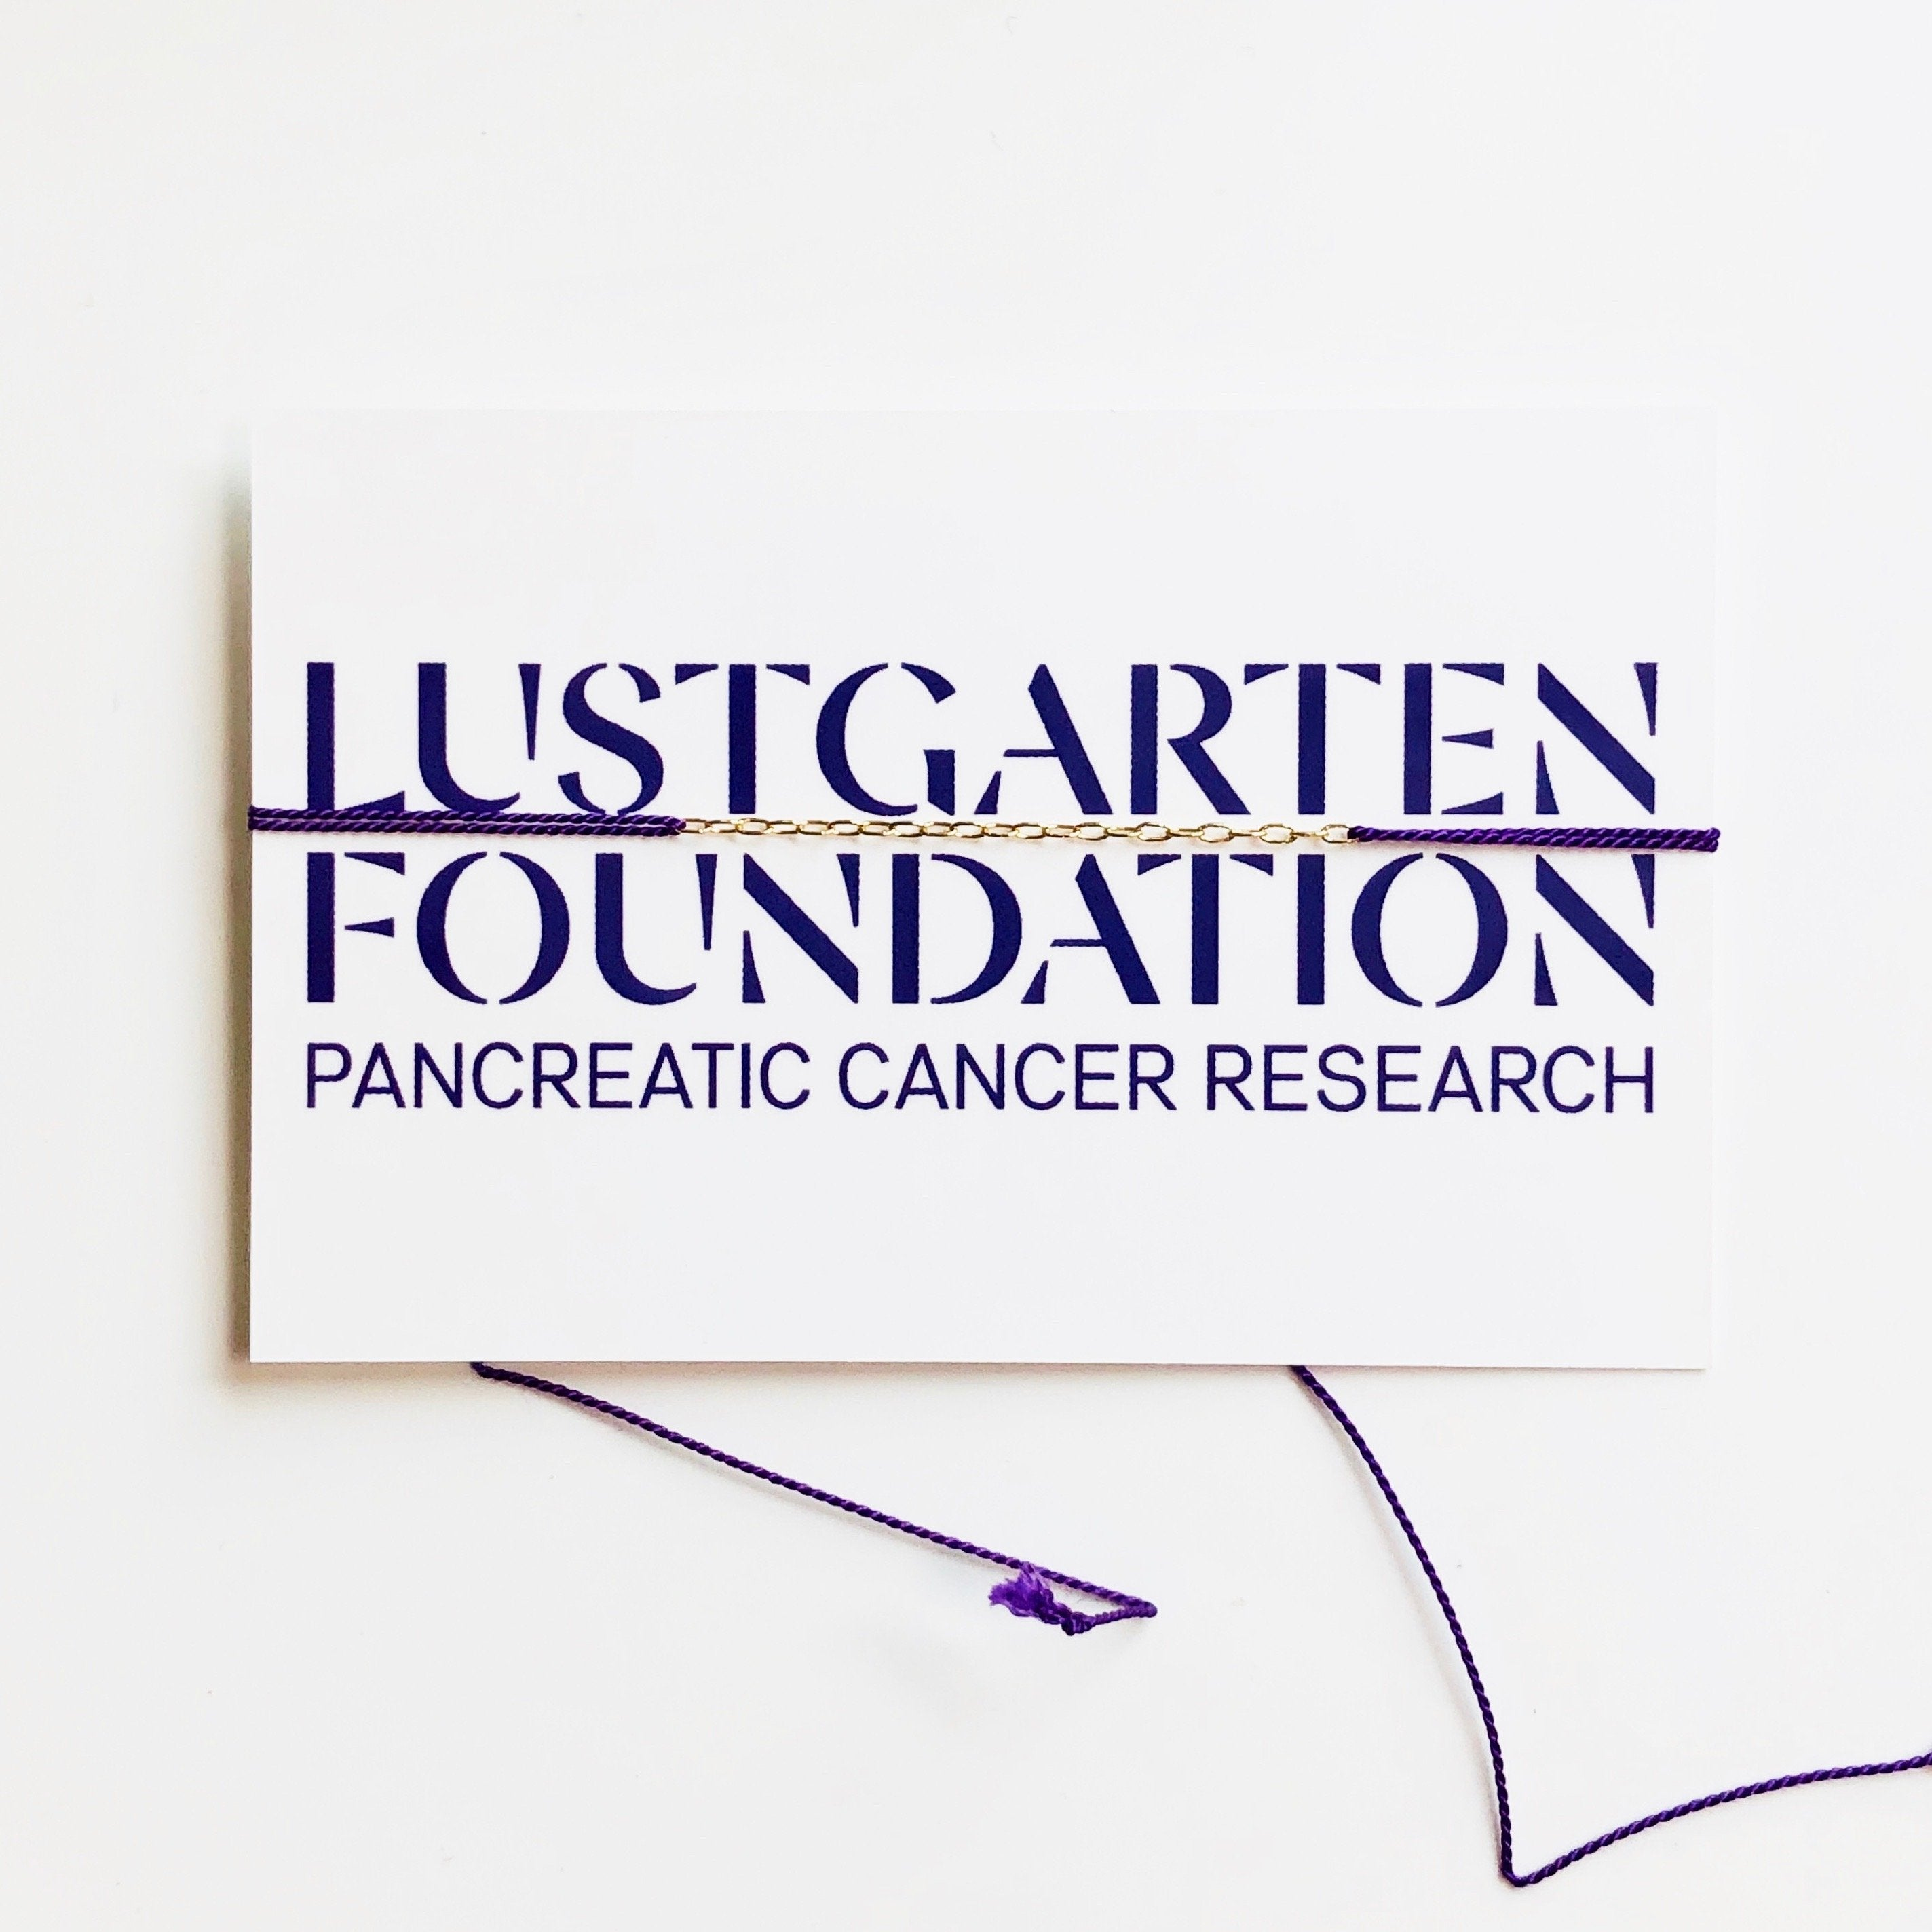 MAS Designs X Lustgarten Foundation - MAS Designs